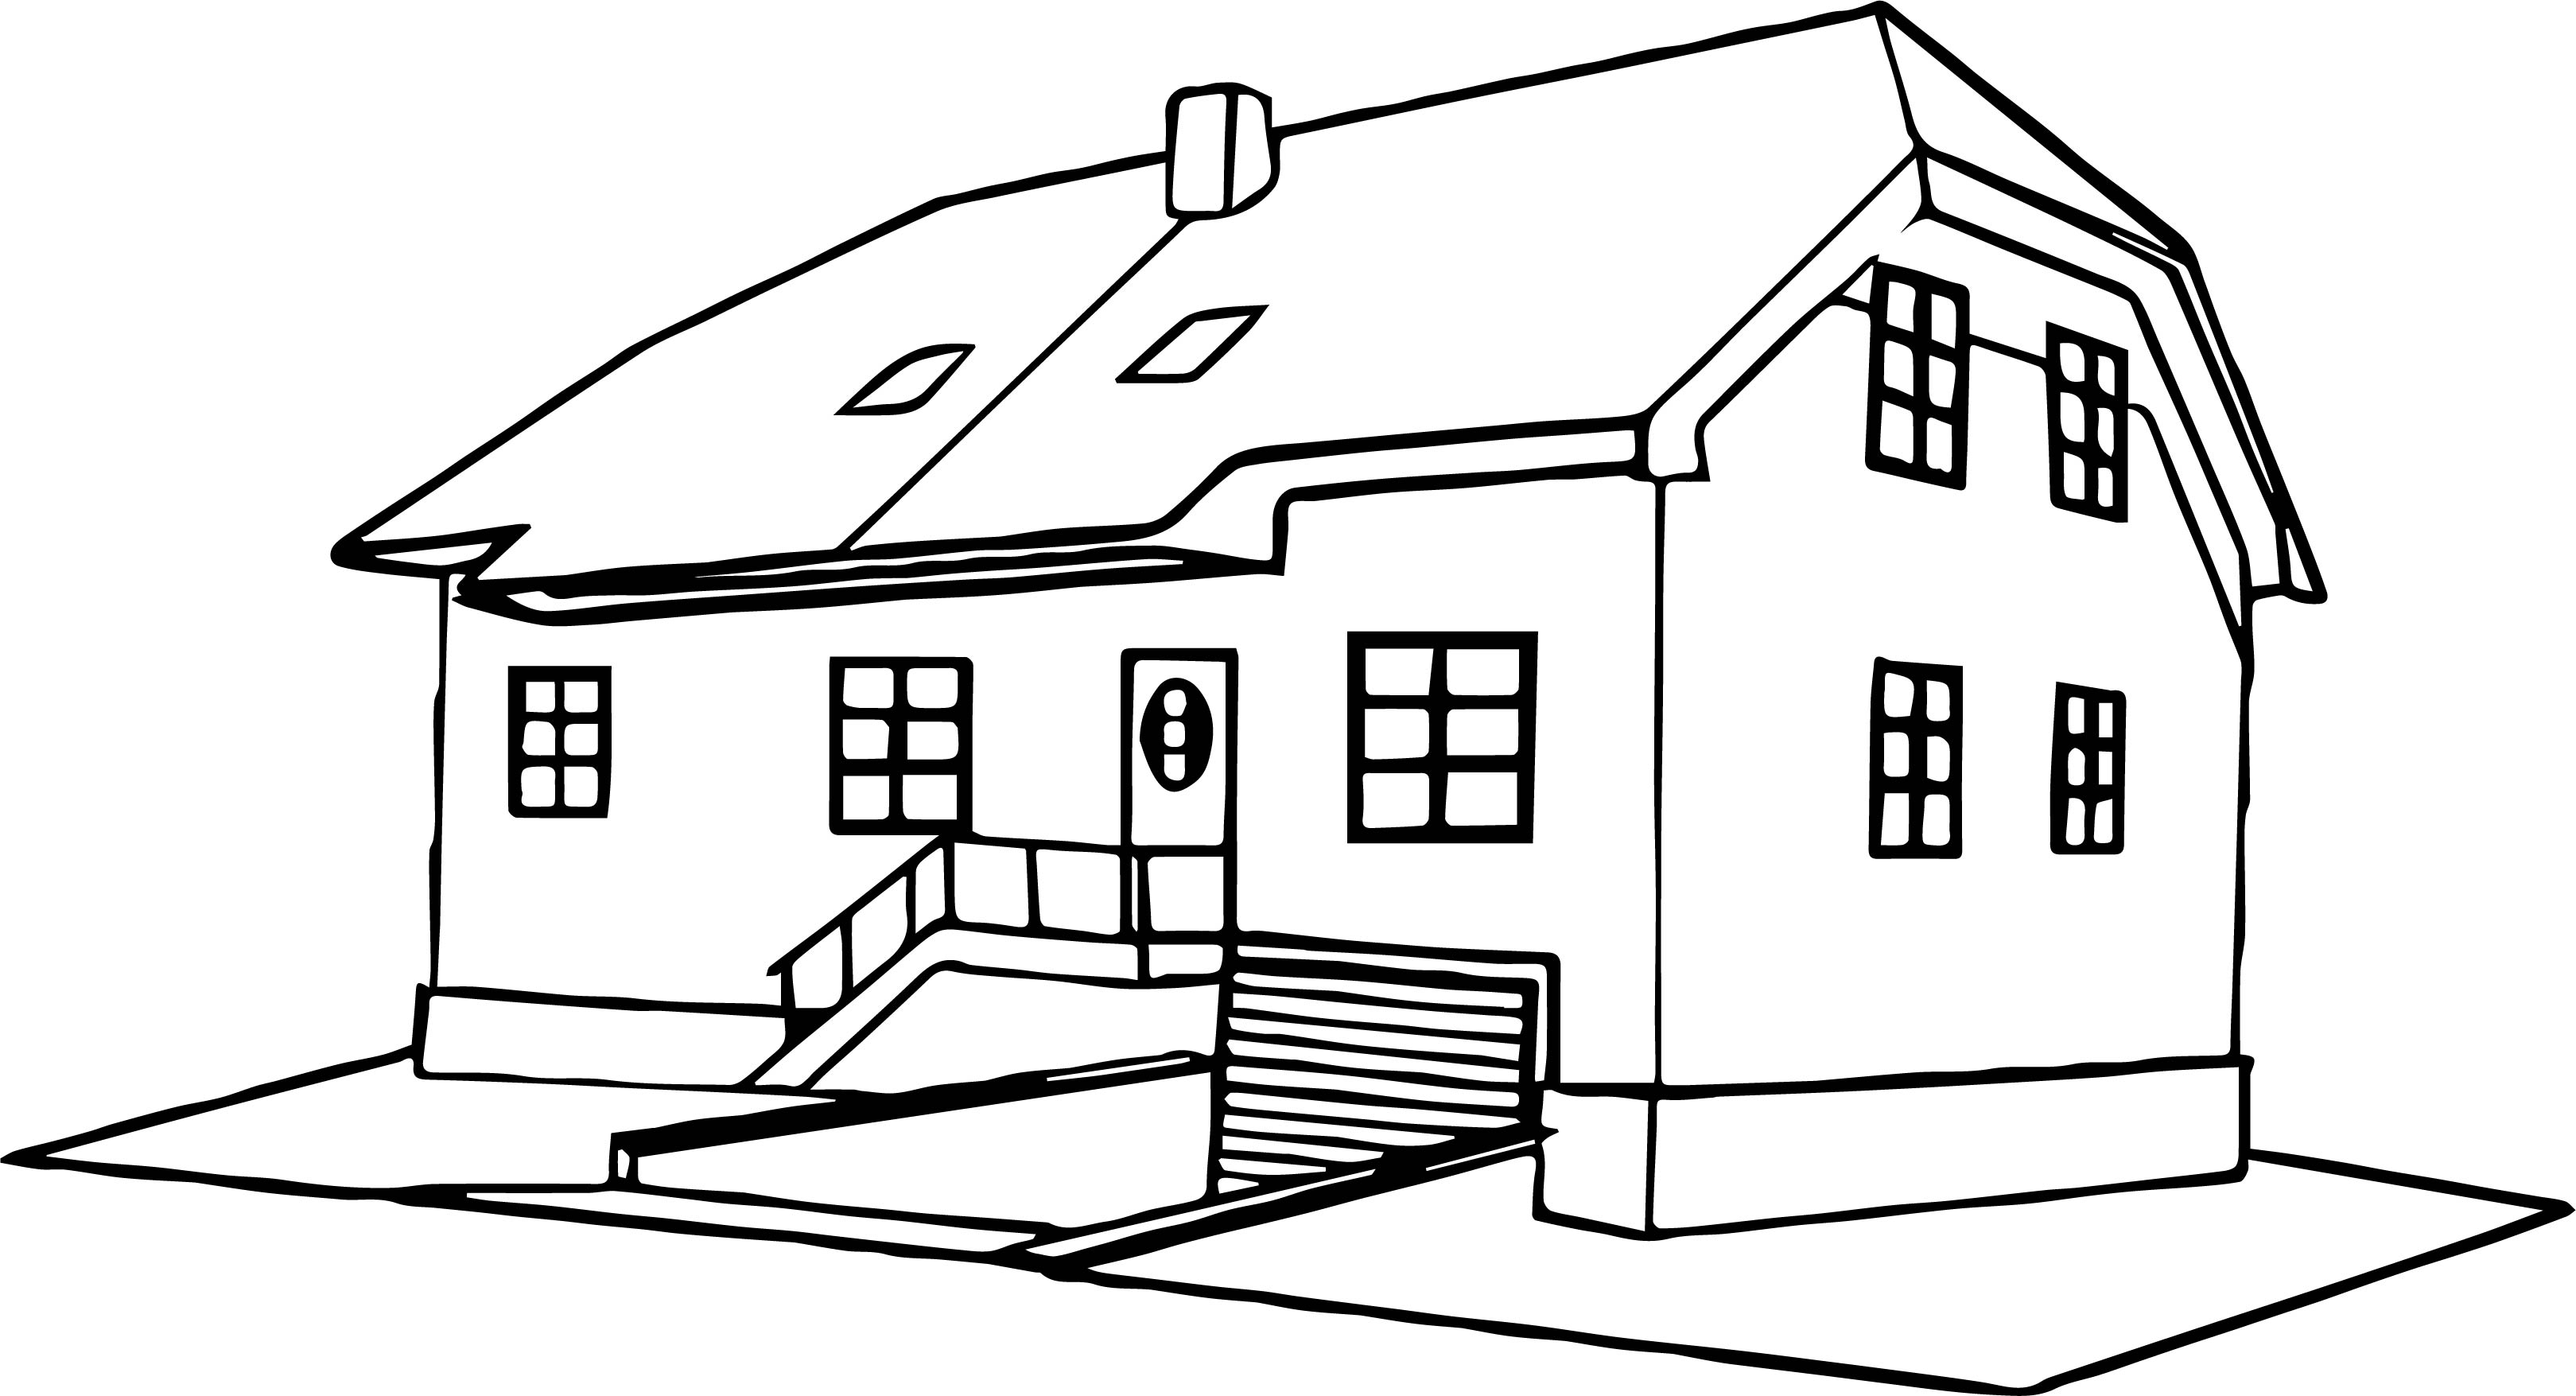 coloring pages houses house coloring page 32 wecoloringpagecom coloring houses pages